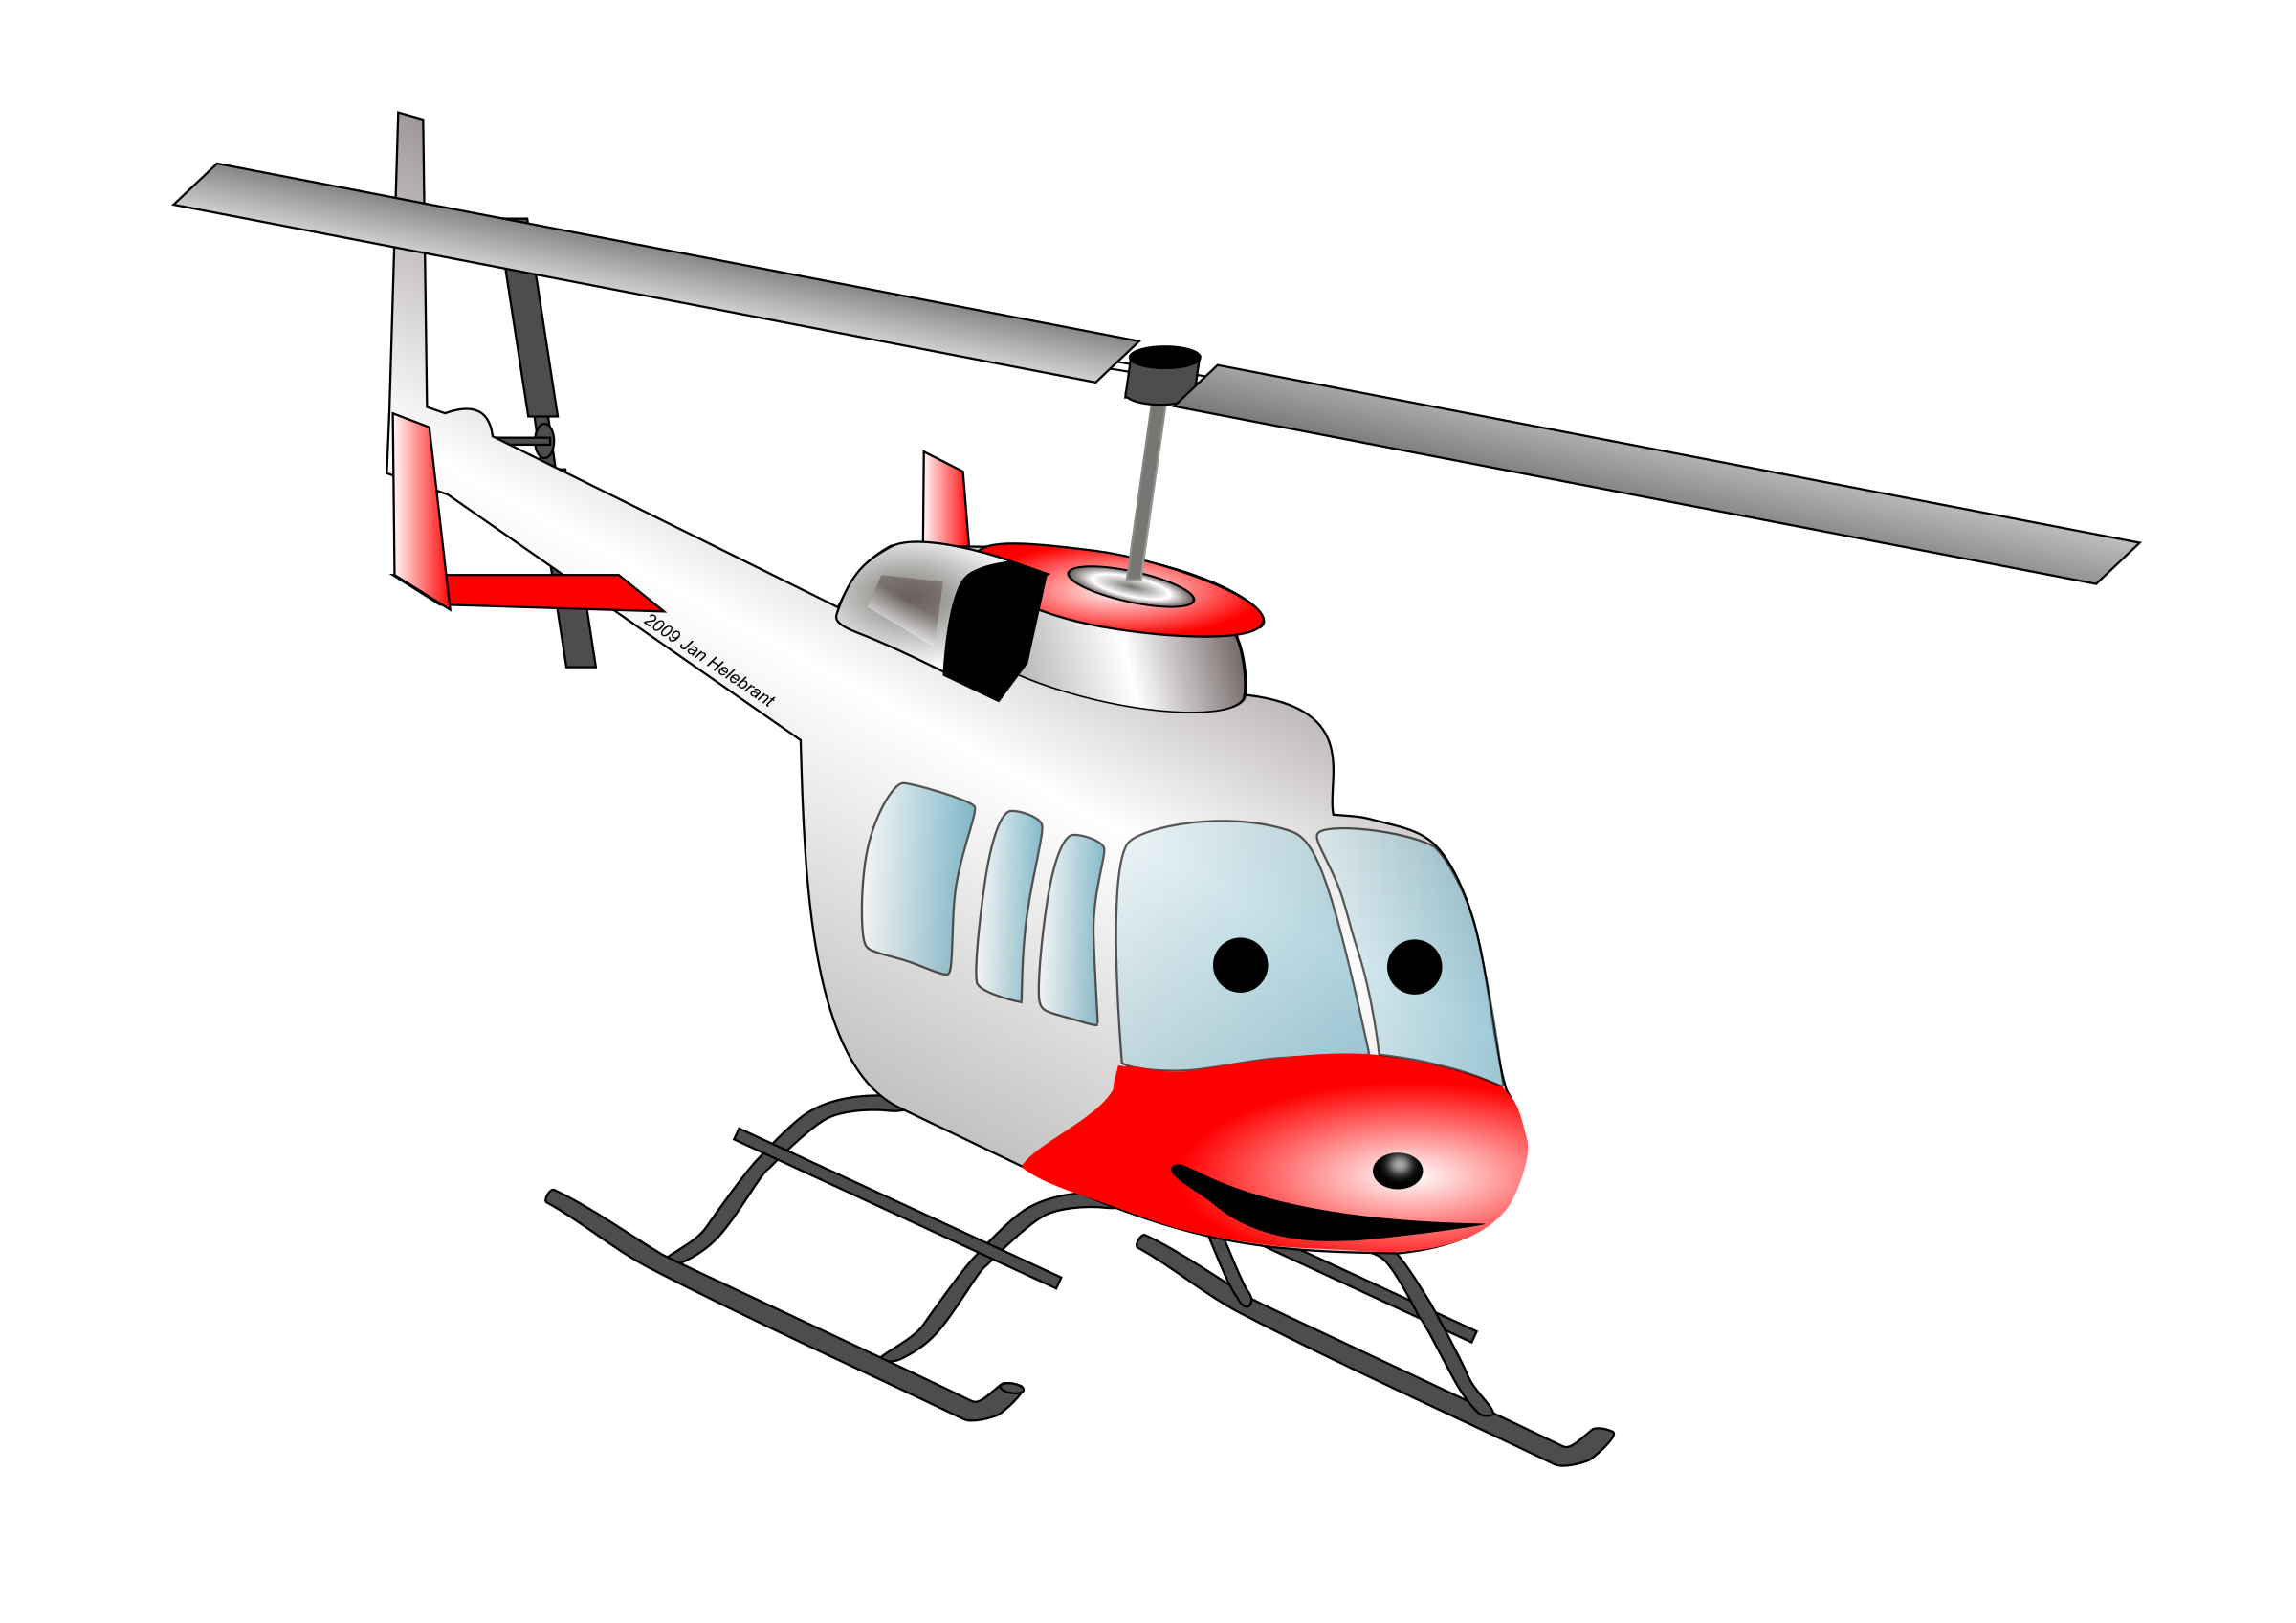 Cartoon Bell helicopter by Juhele